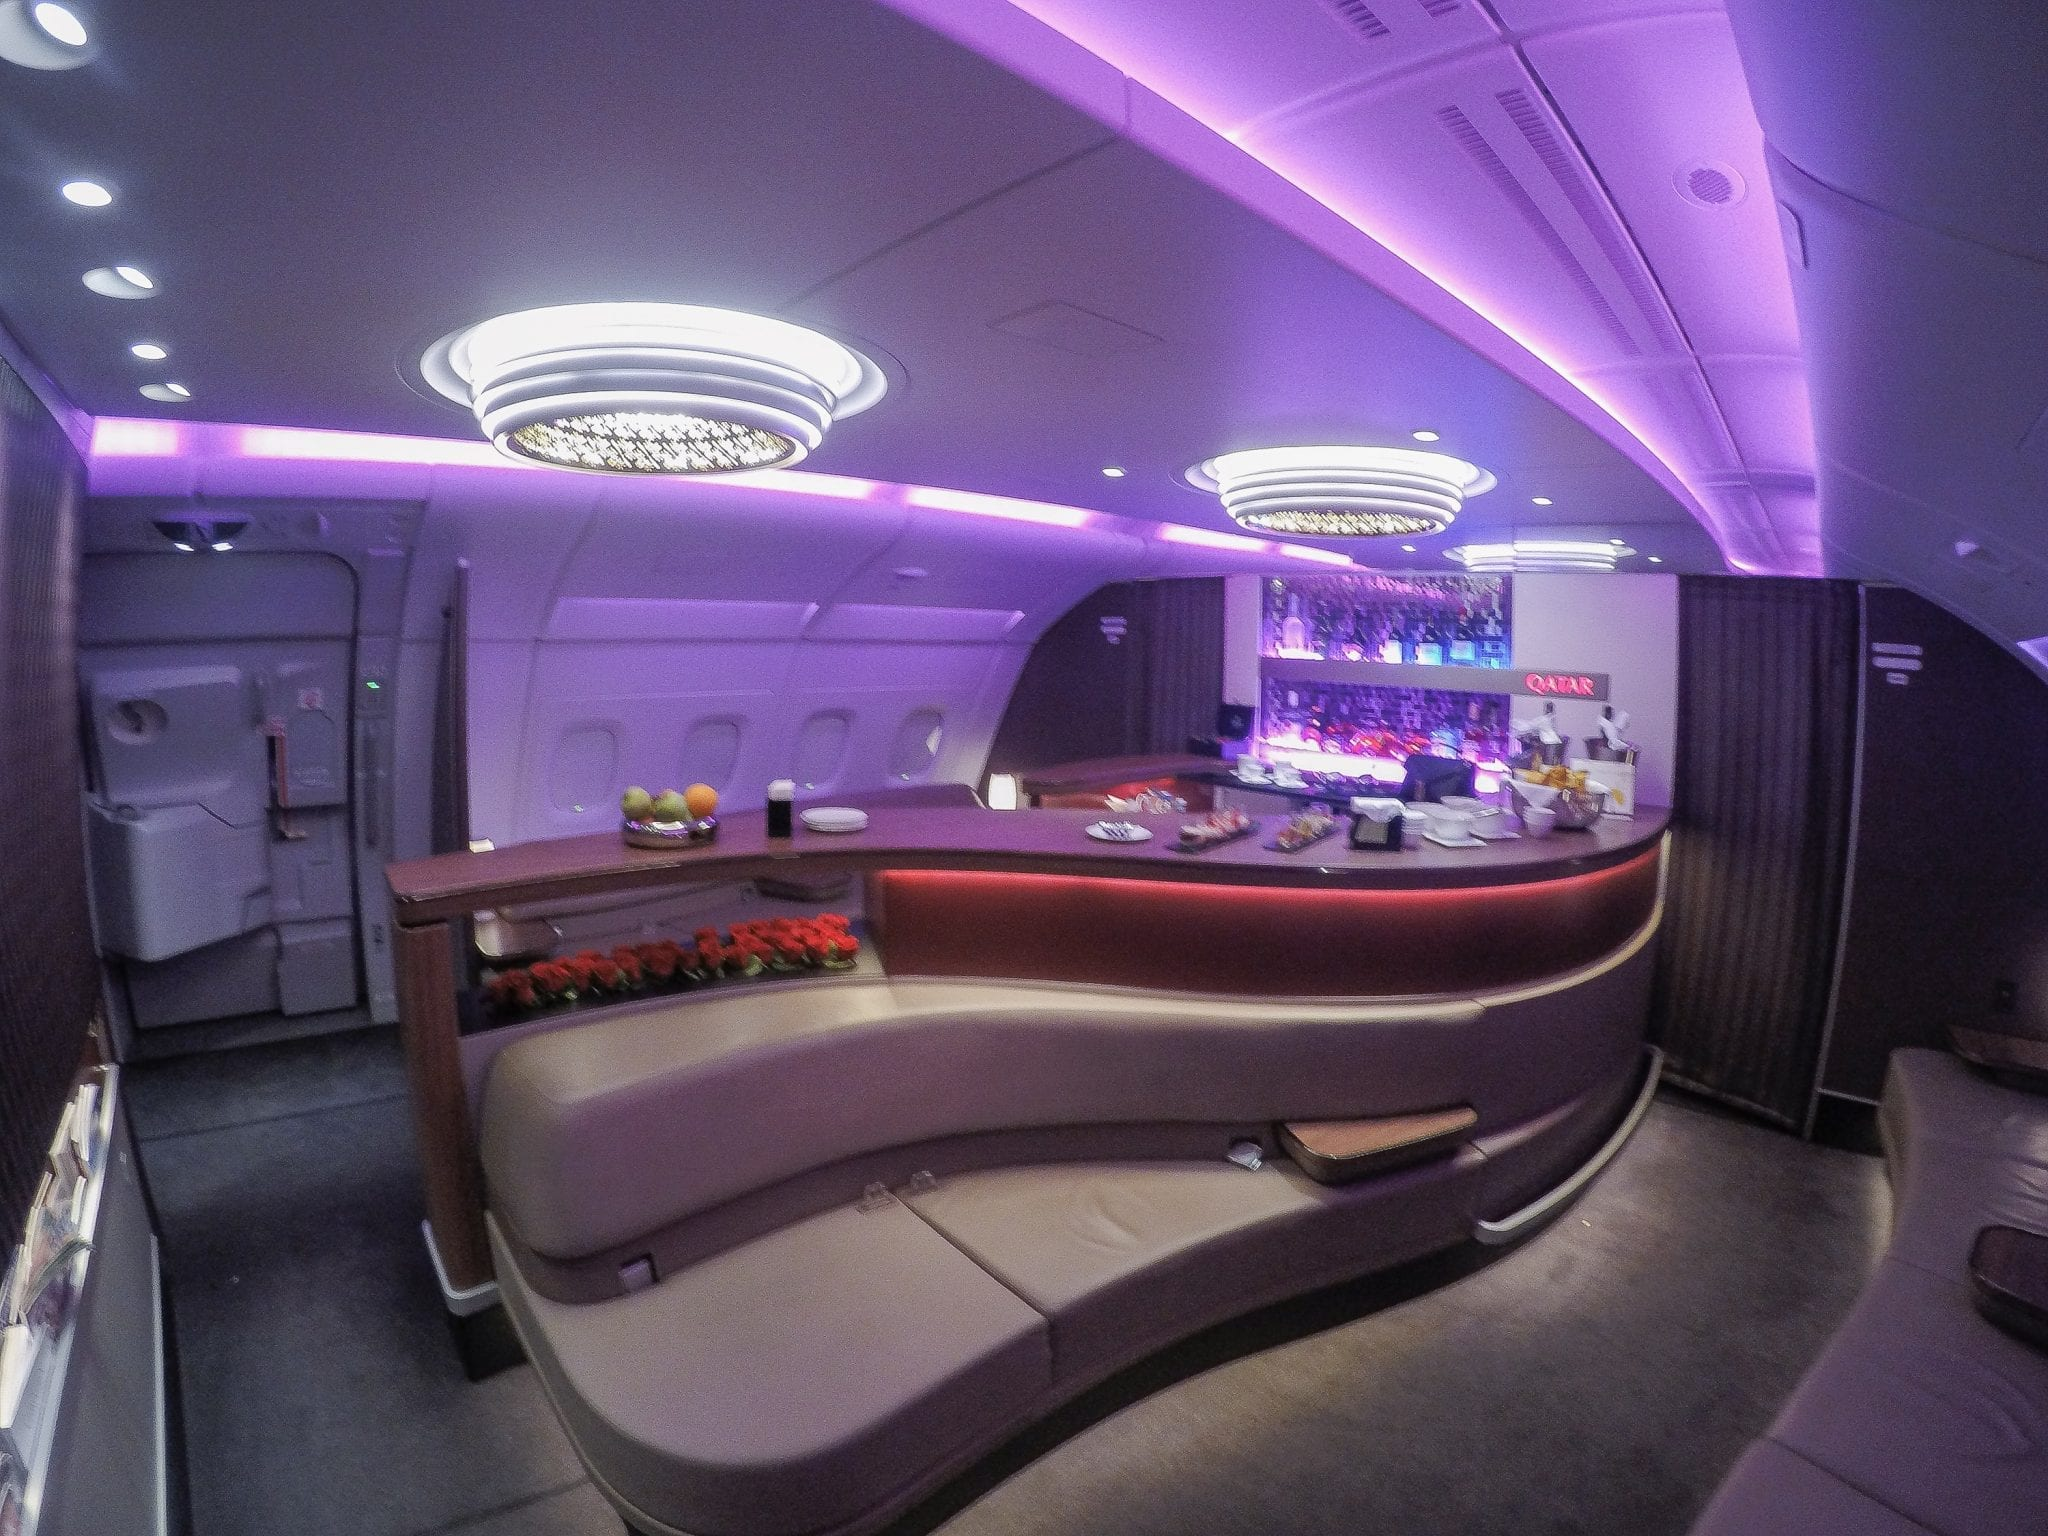 QRJ DOH SYD 27 - REVIEW - Qatar Airways : Business Class - Doha DOH to Sydney SYD (A380)